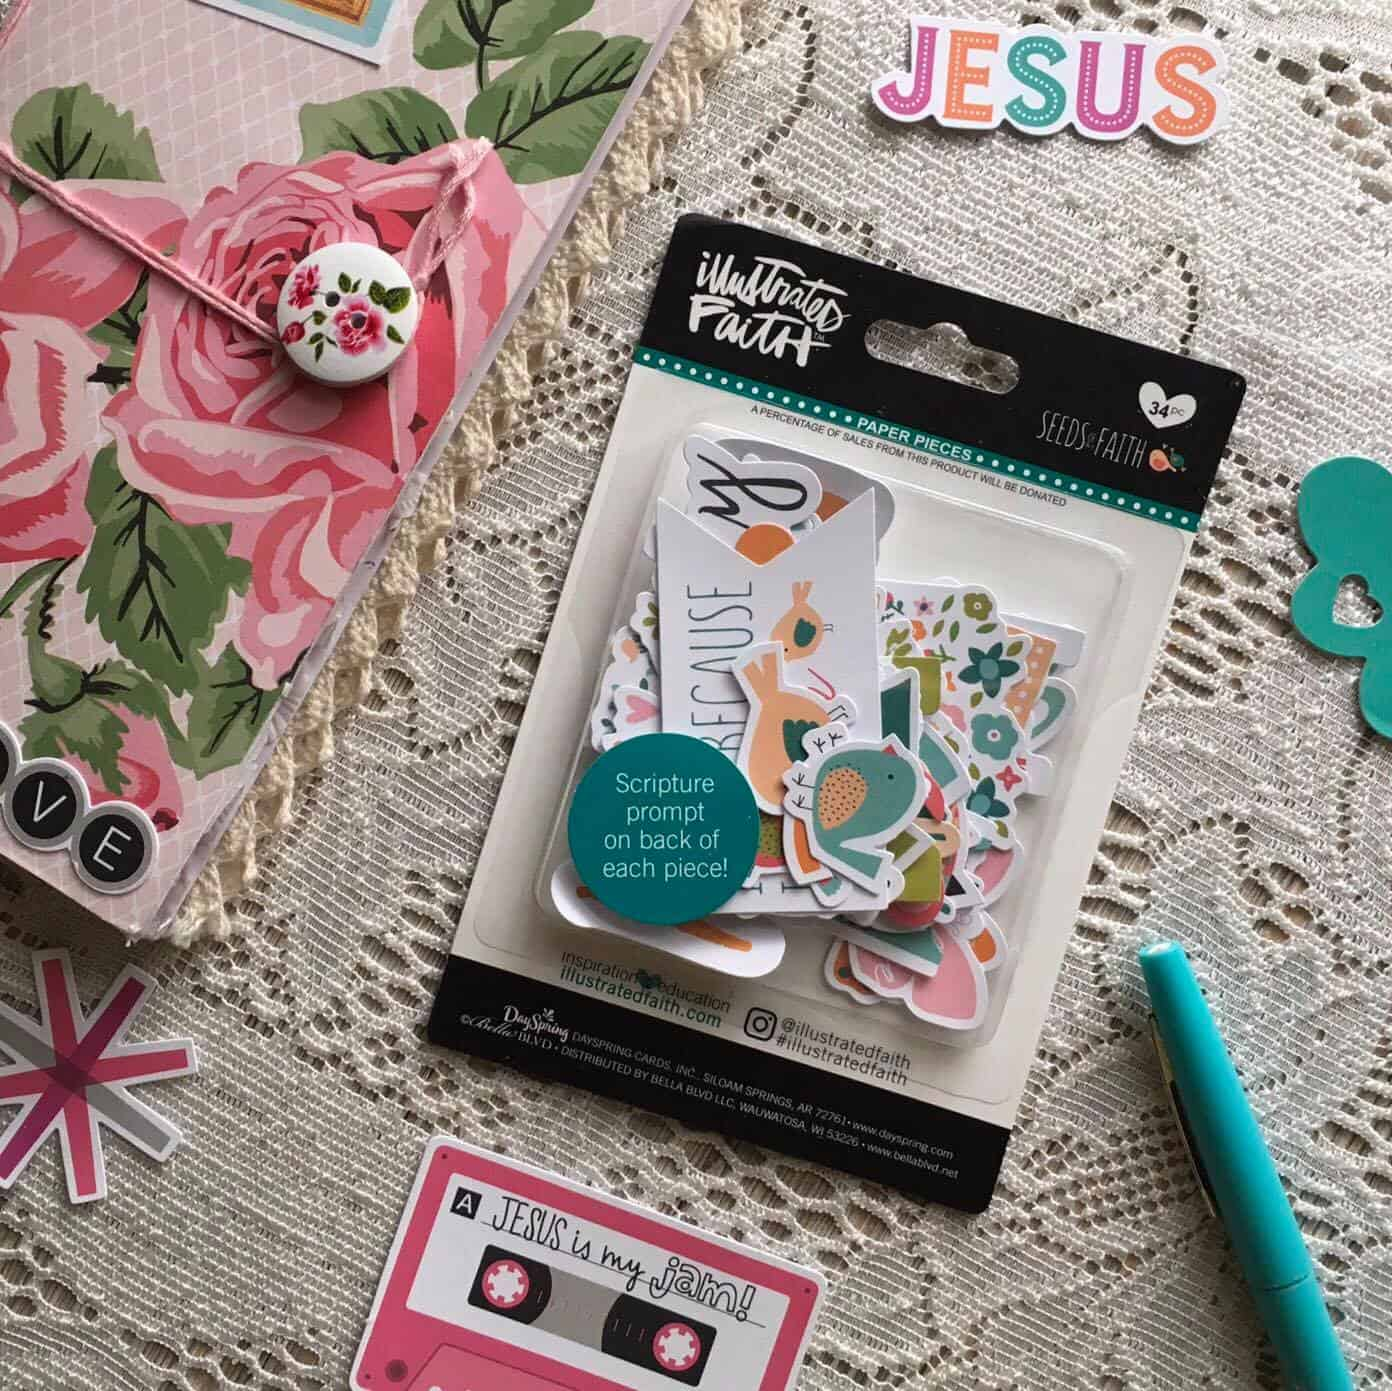 You CAN learn to bible journal!  Get started in journaling your faith and learn How to Start Bible Journaling for Beginners with Hey Creative Sister